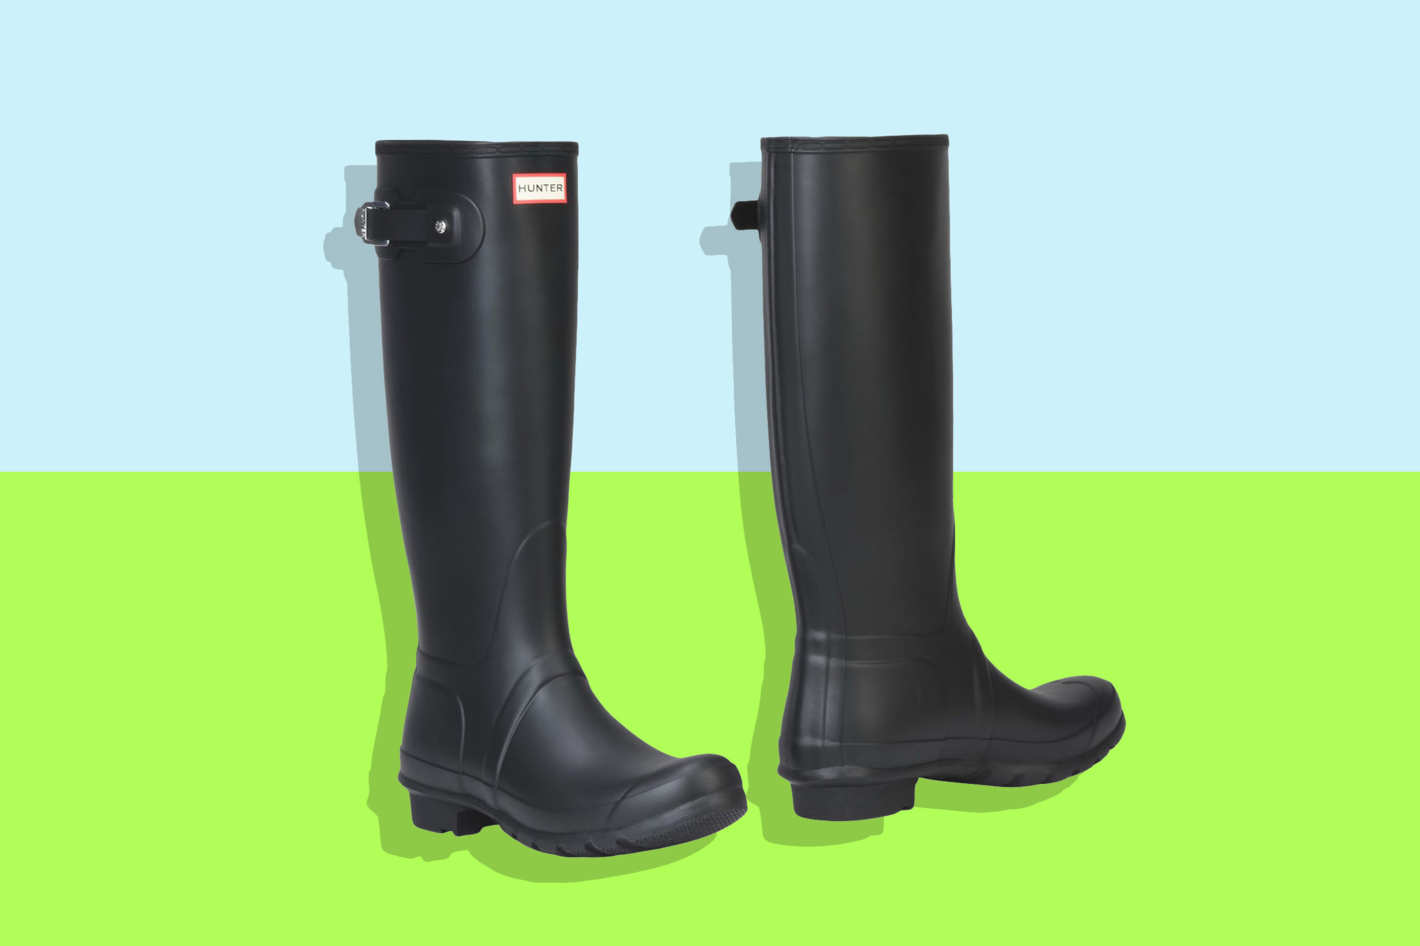 Black Hunter Rain Boots on Sale at Yoox